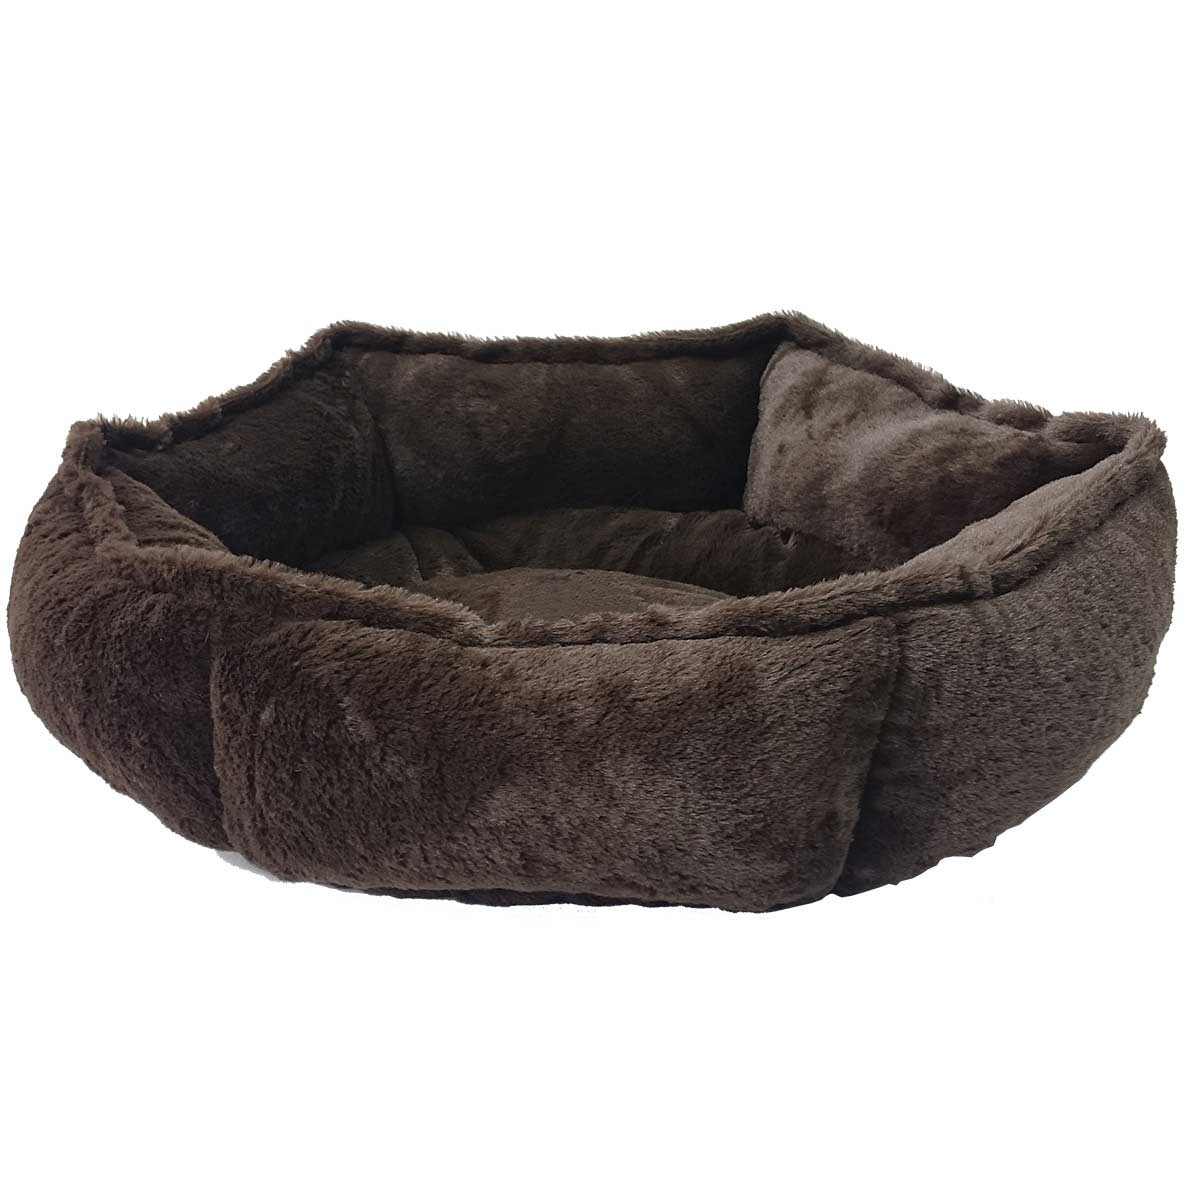 Chocolate Sleep Zone Specialty Beds Hex Cuddler for Dogs and Cats